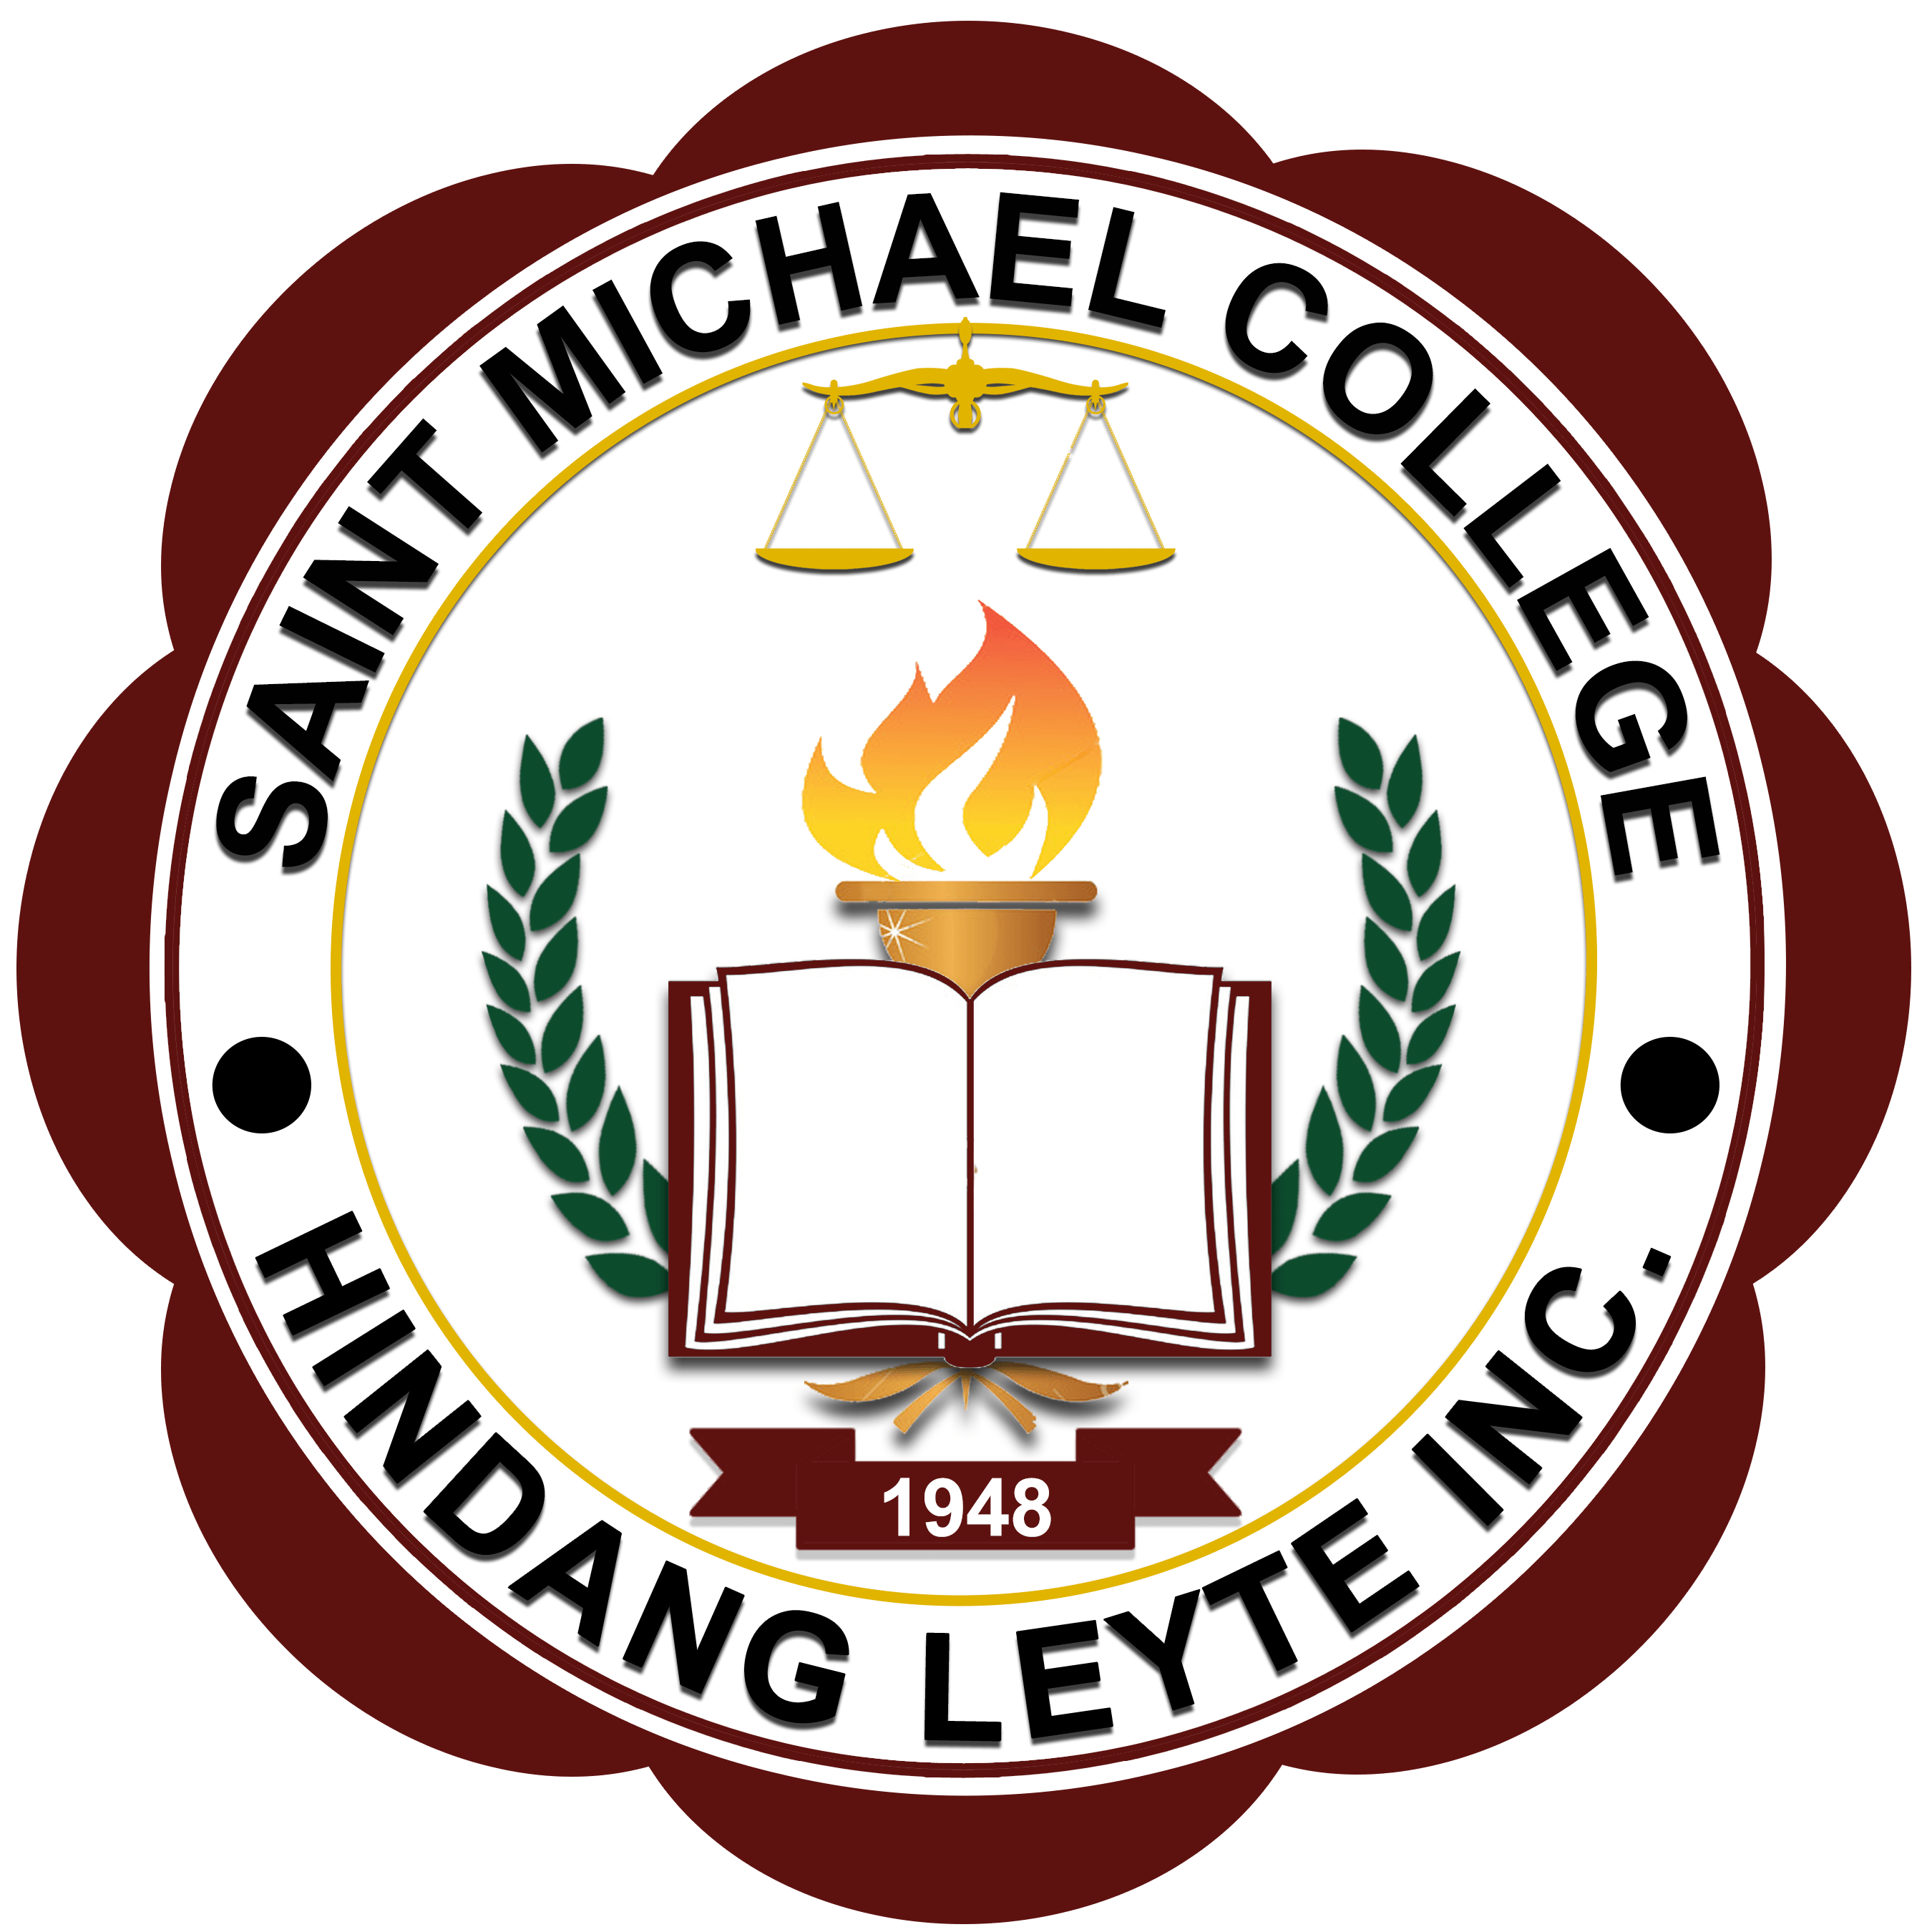 Saint Michael College of Hindang Leyte Inc. Logo